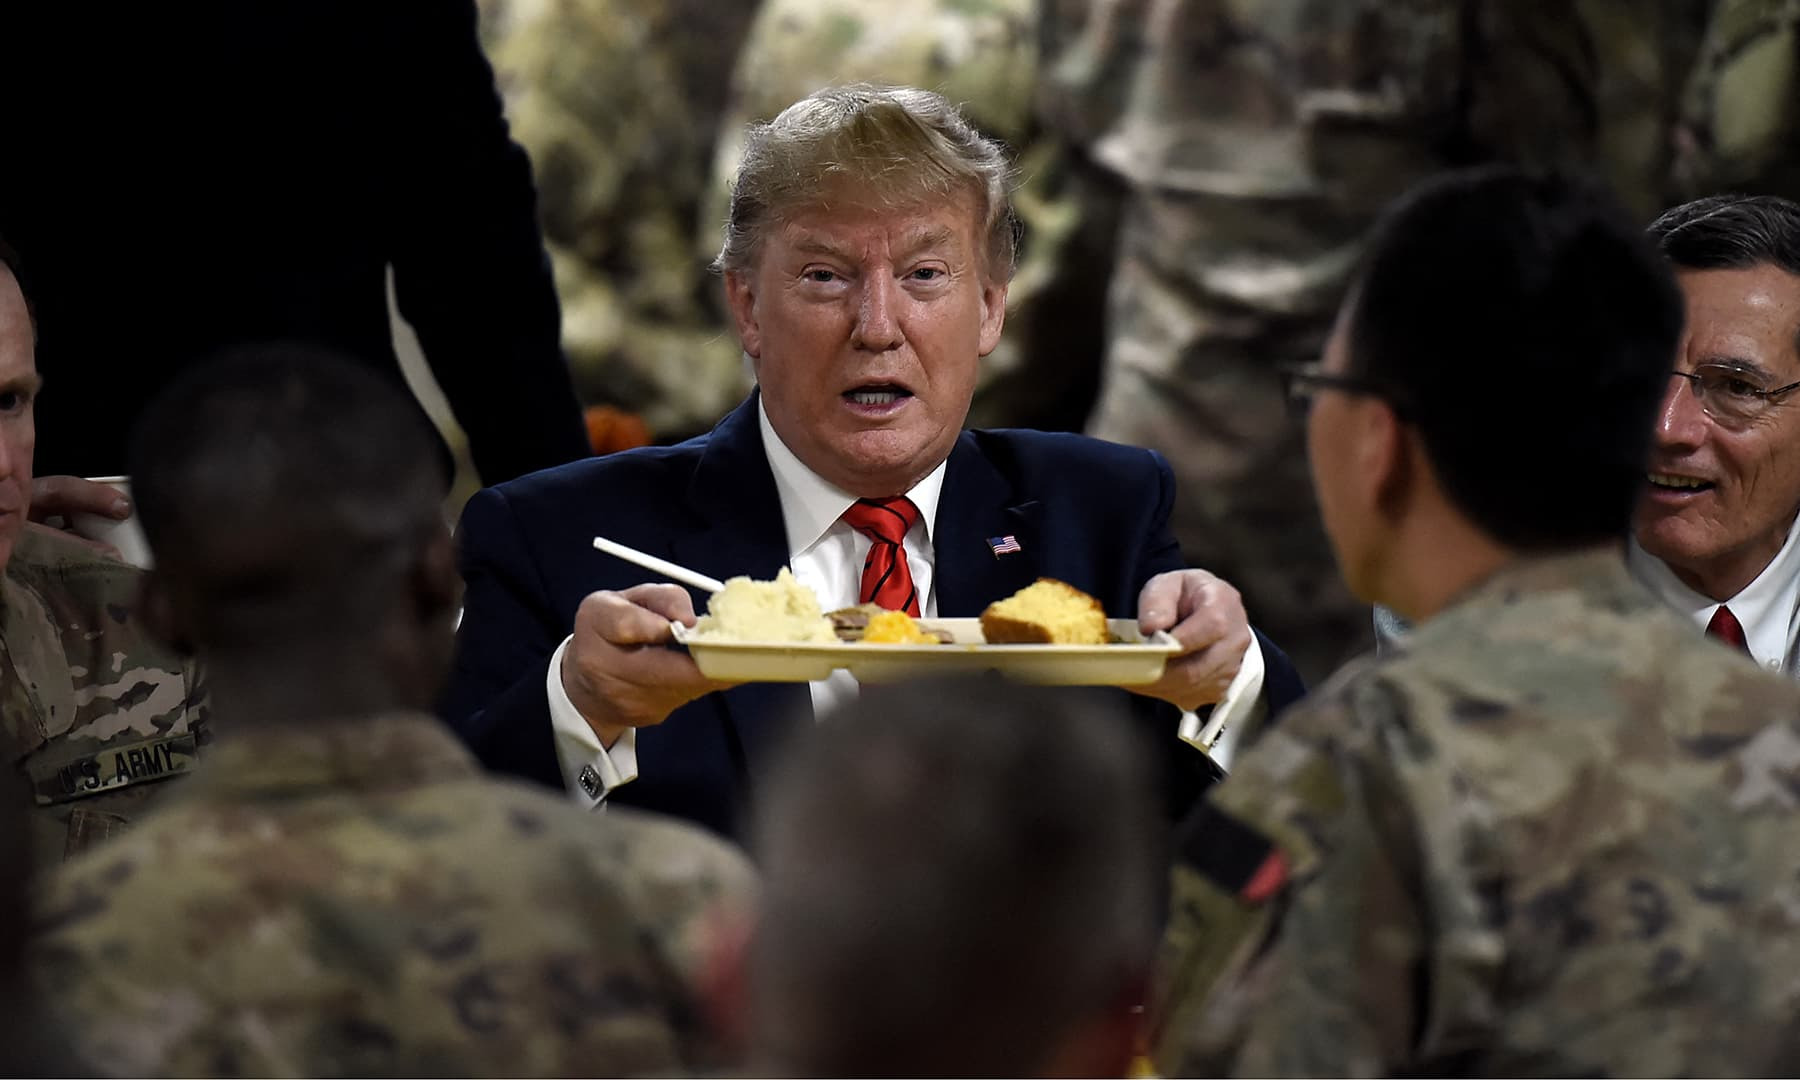 In this file photo taken on November 28, 2019, former US president Donald Trump serves Thanksgiving dinner to US troops at Bagram Air Field during a surprise visit to Afghanistan. — AFP